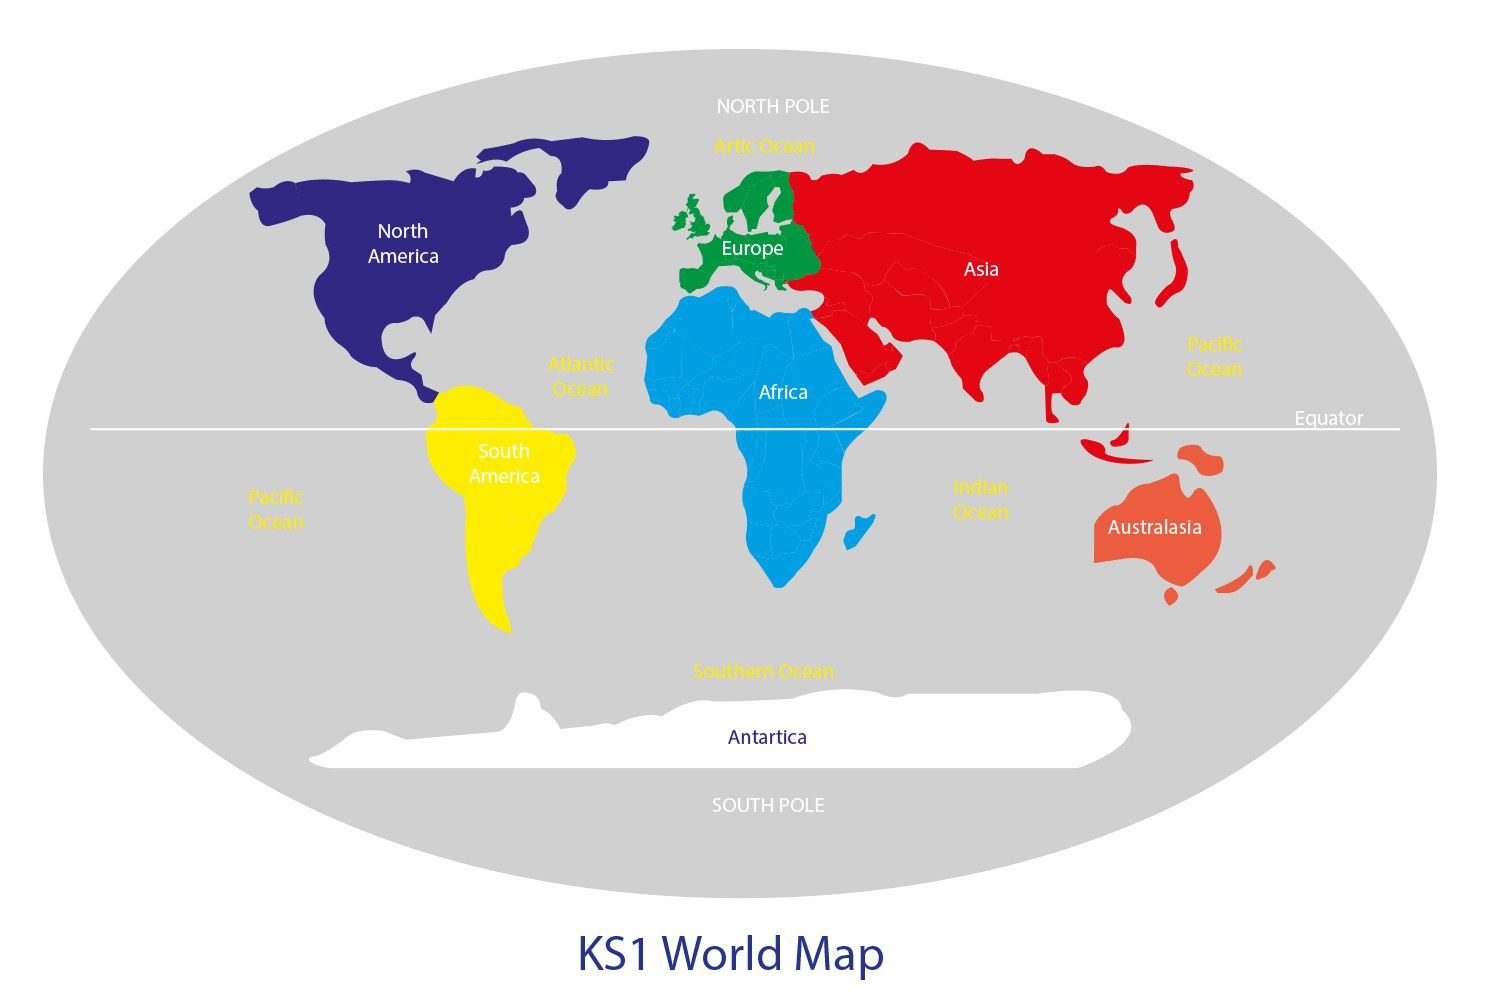 Ks1 world map with continentsease visit out website www ks1 world map with continentsease visit out website first4playgrounds to see the new geography curriculum changes and our new maps to help gumiabroncs Gallery